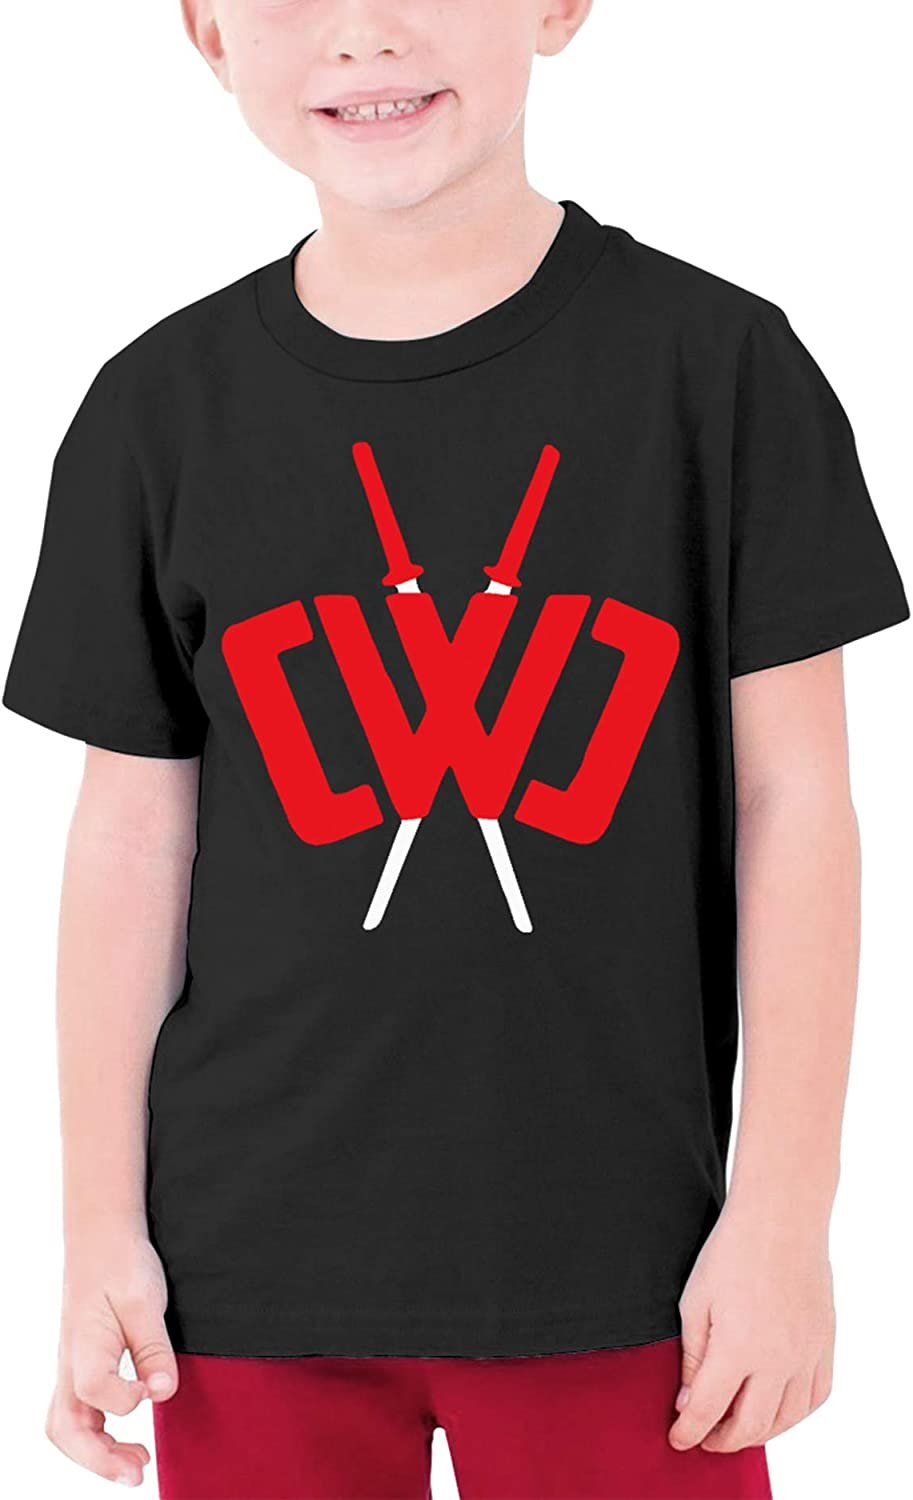 Youth Fashion Chad Wild Clay Custom T-Shirt Boy Girl Colorful Tops (Black,S)